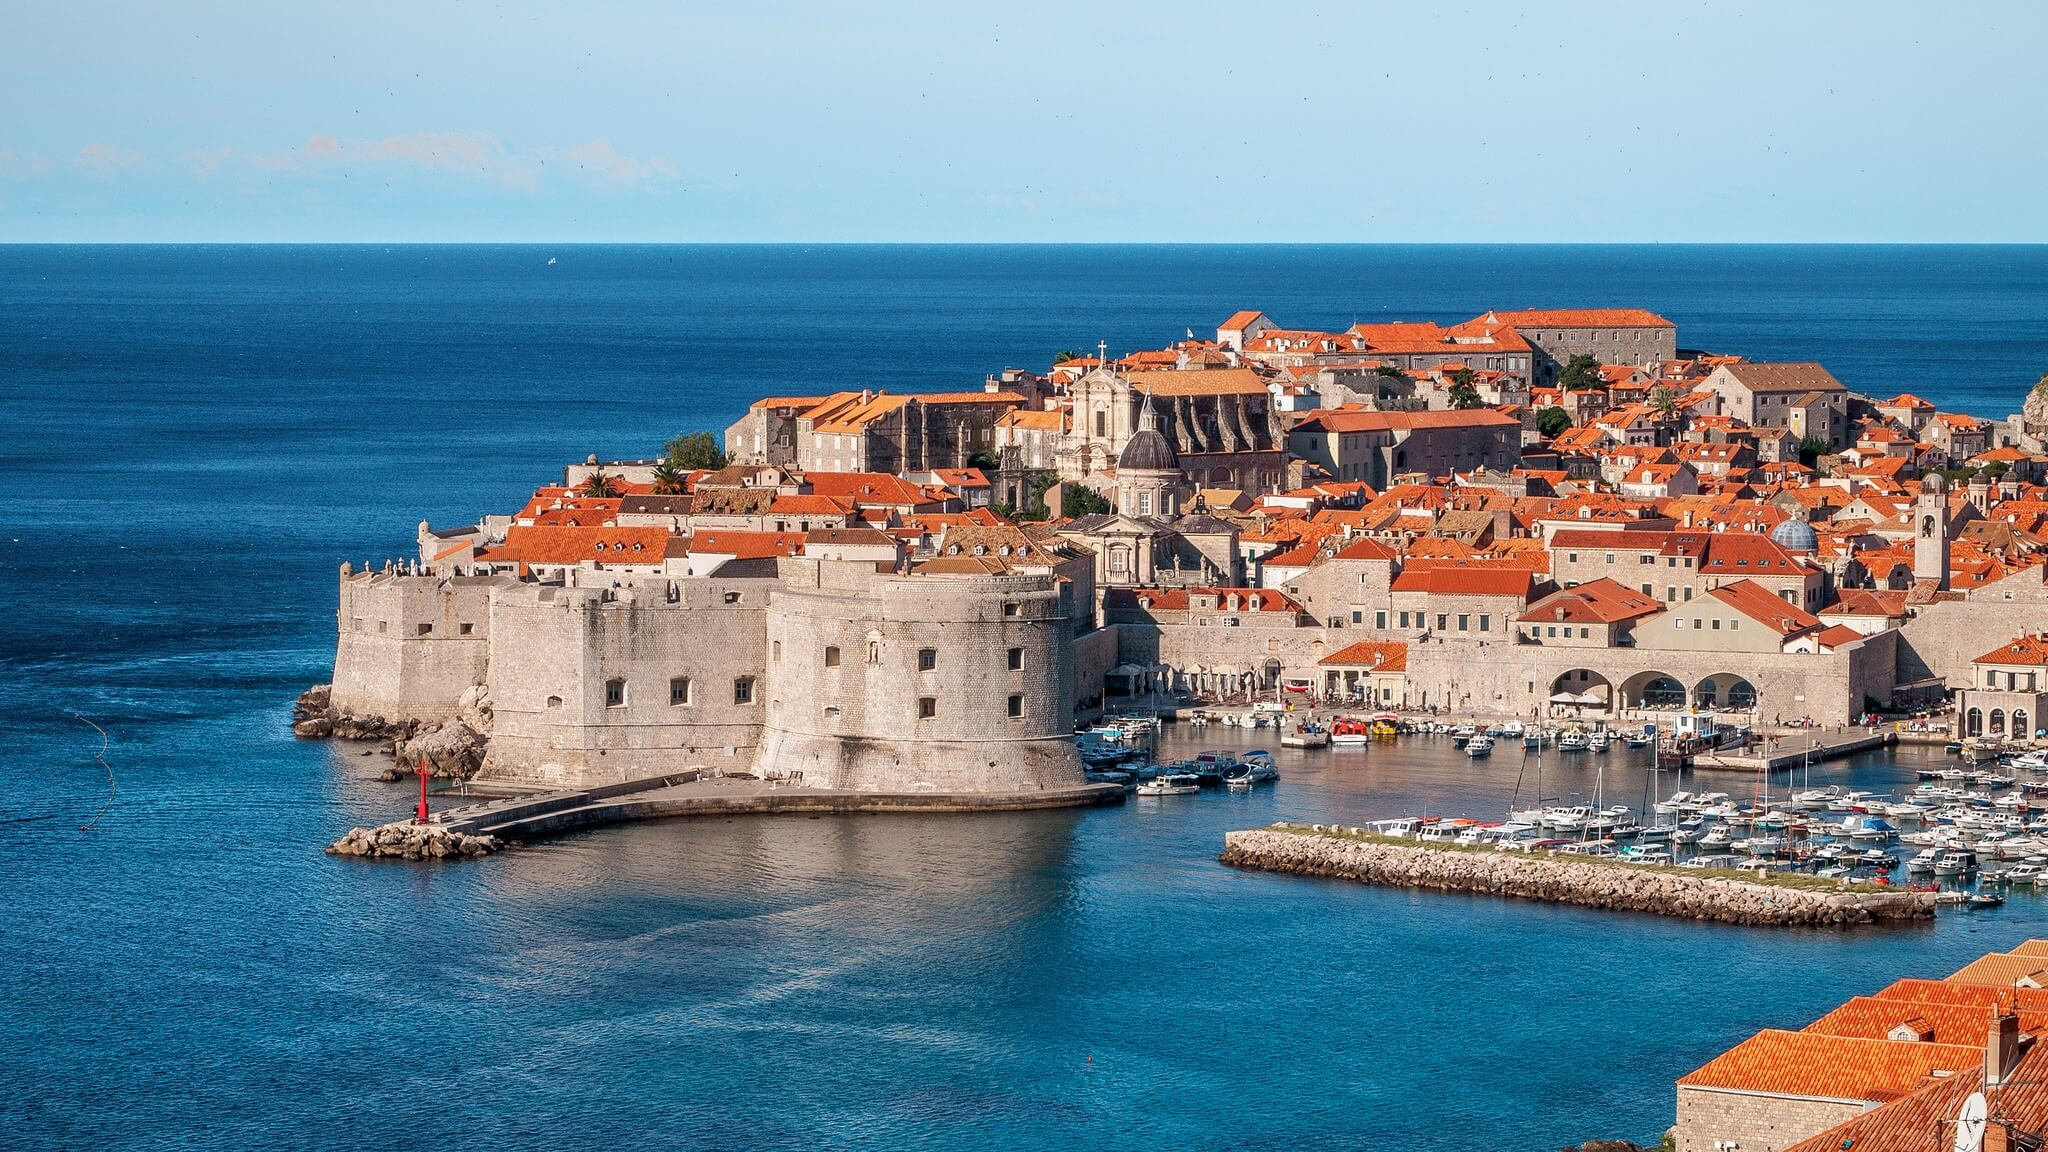 Sights to see in Croatia